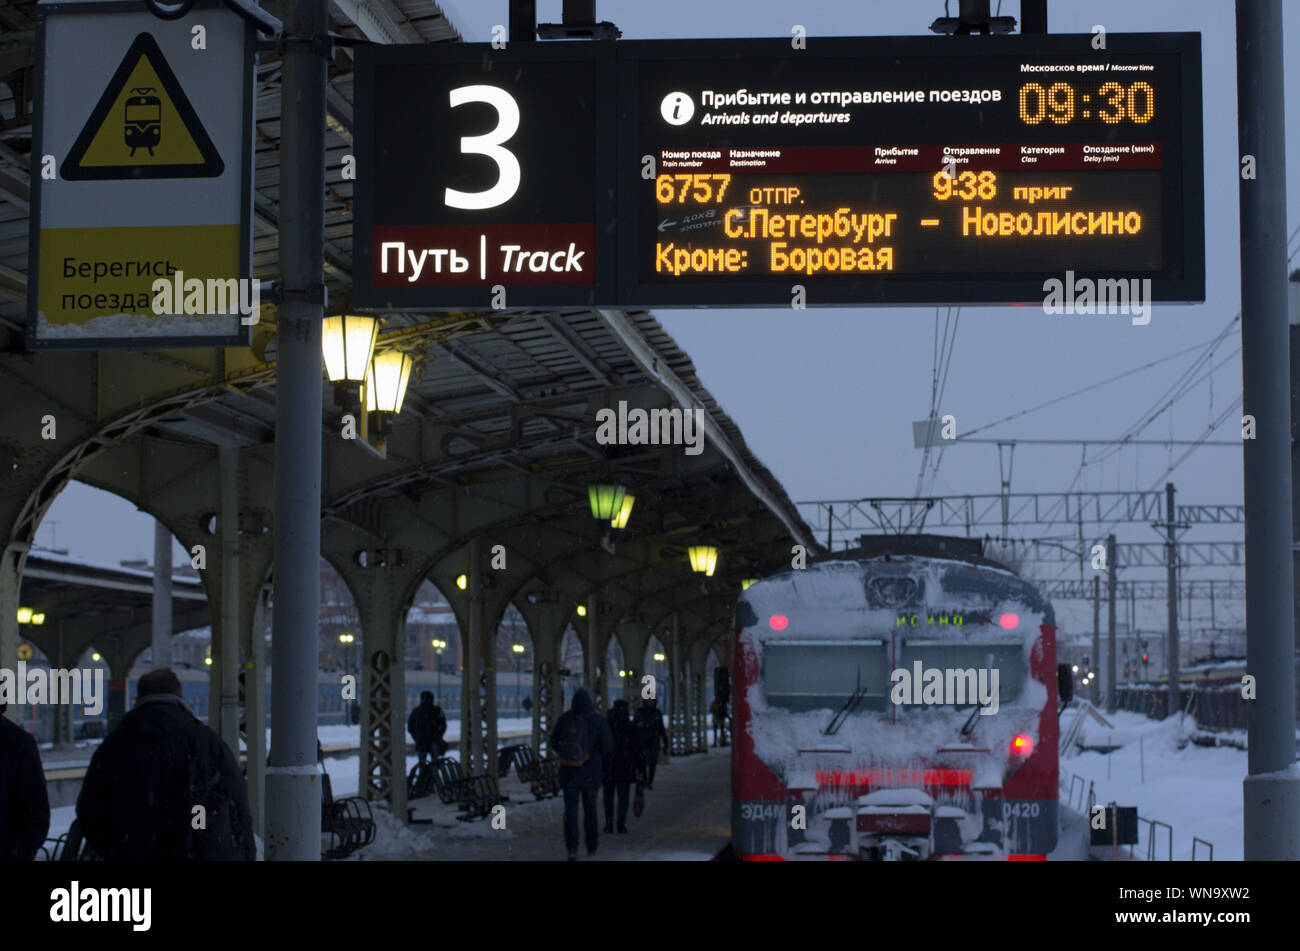 Vitebsky railway station,Saint Petersburg,Russia - January 24, 2019: Luminous scoreboard with the schedule of trains in Russian and duplication in Eng Stock Photo